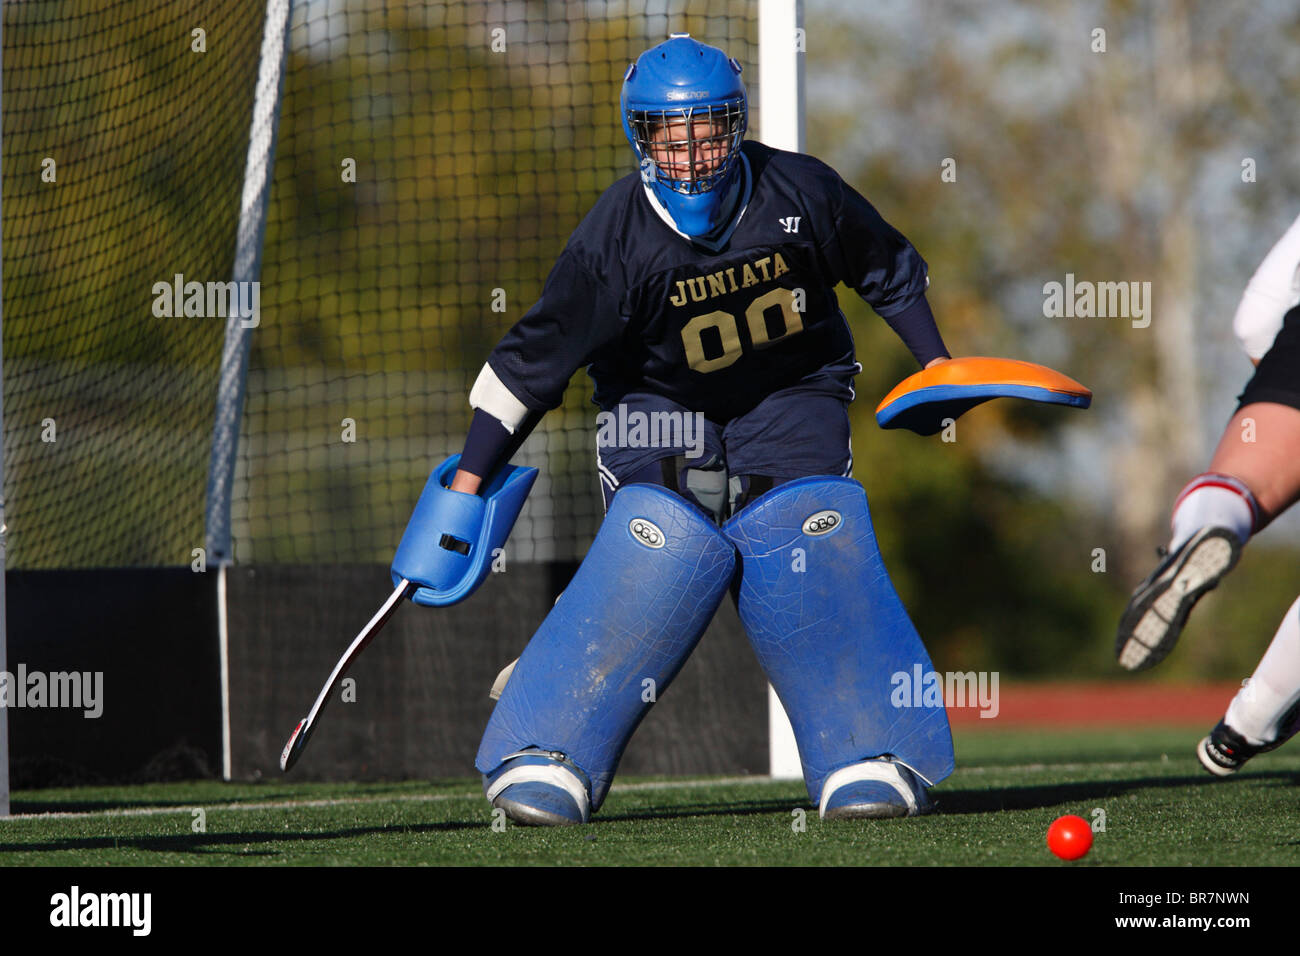 Juniata College goalkeeper in action against Catholic University during the Landmark Conference field hockey championship. - Stock Image